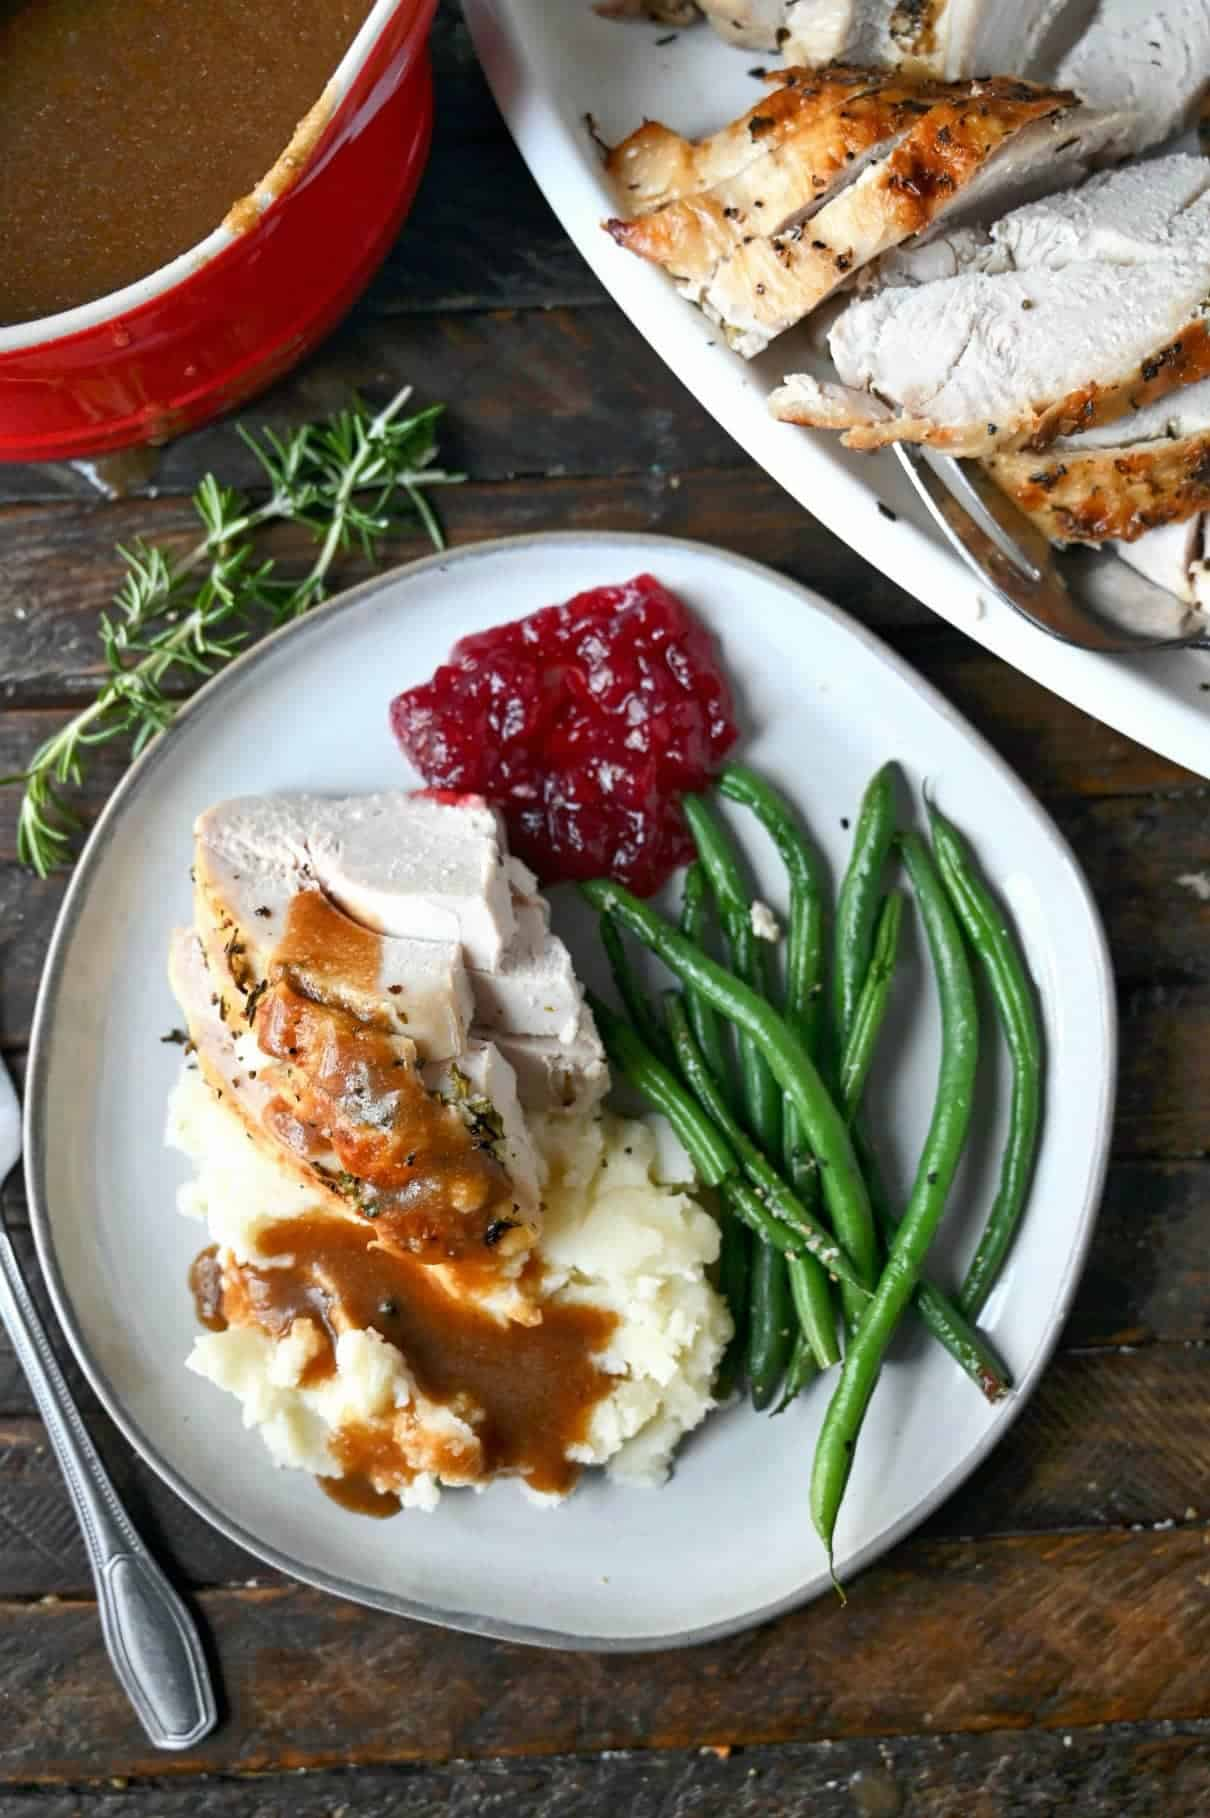 Turkey, mashed potatoes, green beans and cranberries on a white plate.